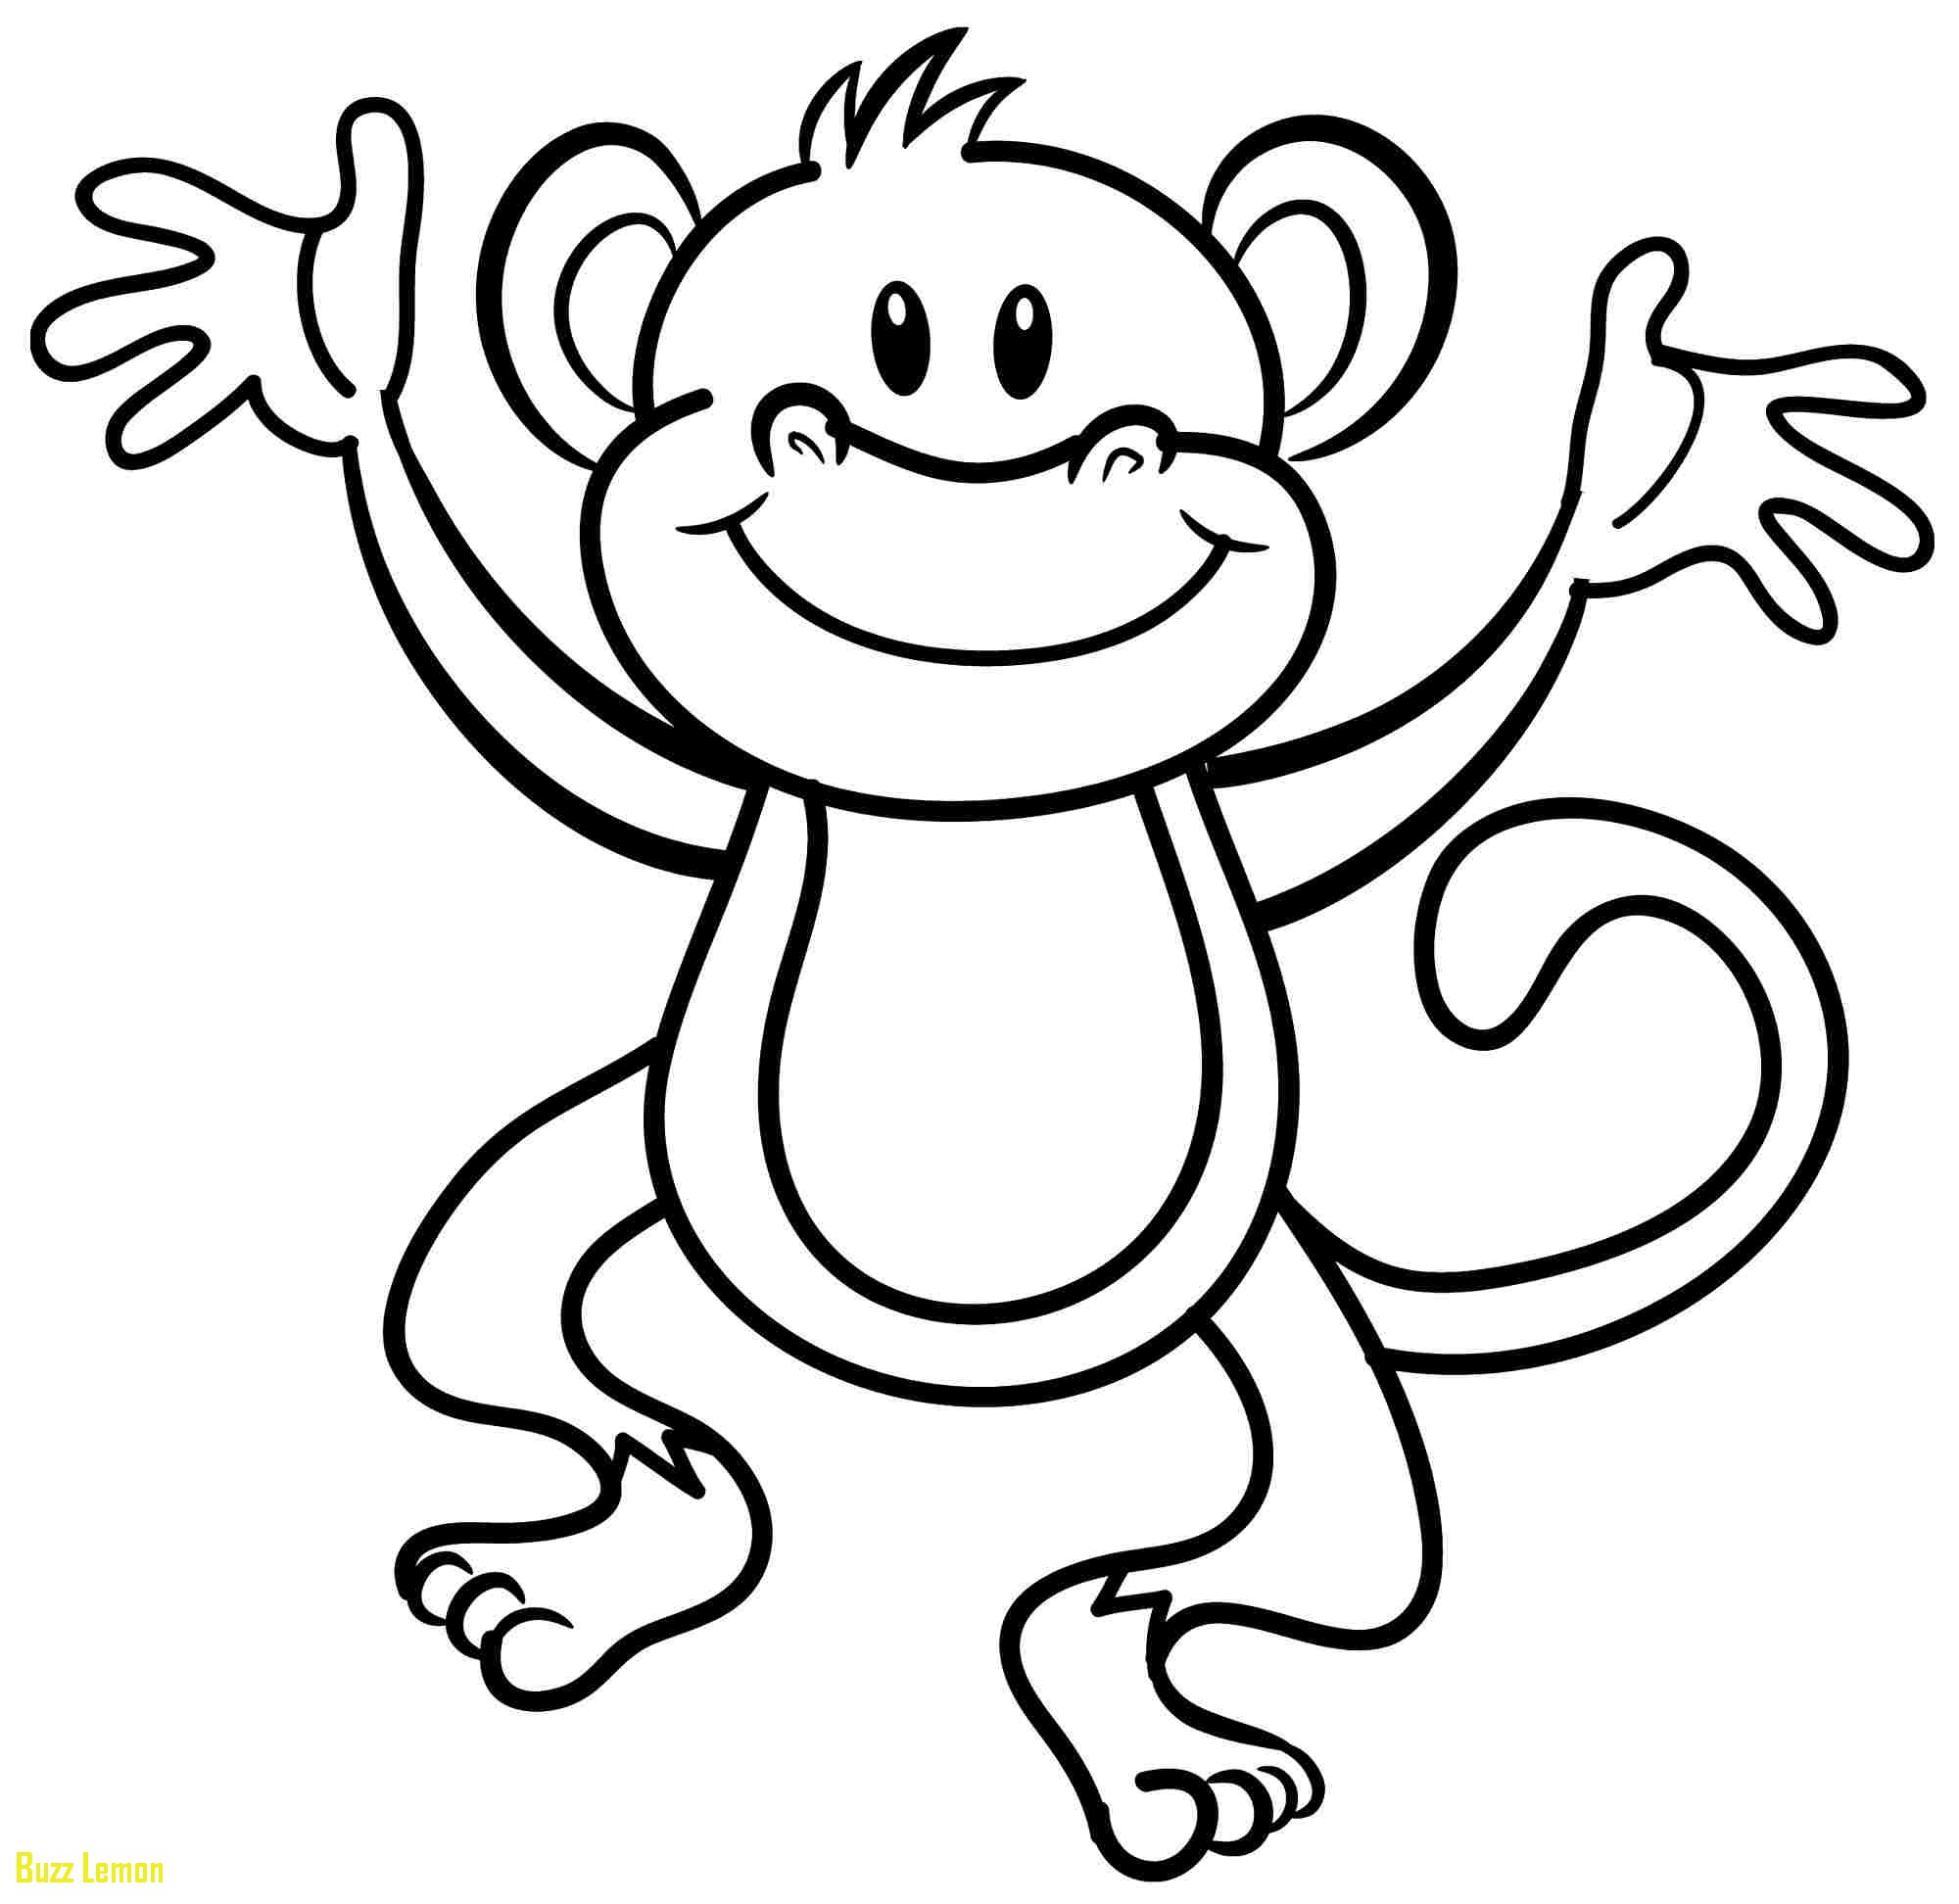 2000x1944 Colouring Sheets For Children Awesome Children Coloring Pages